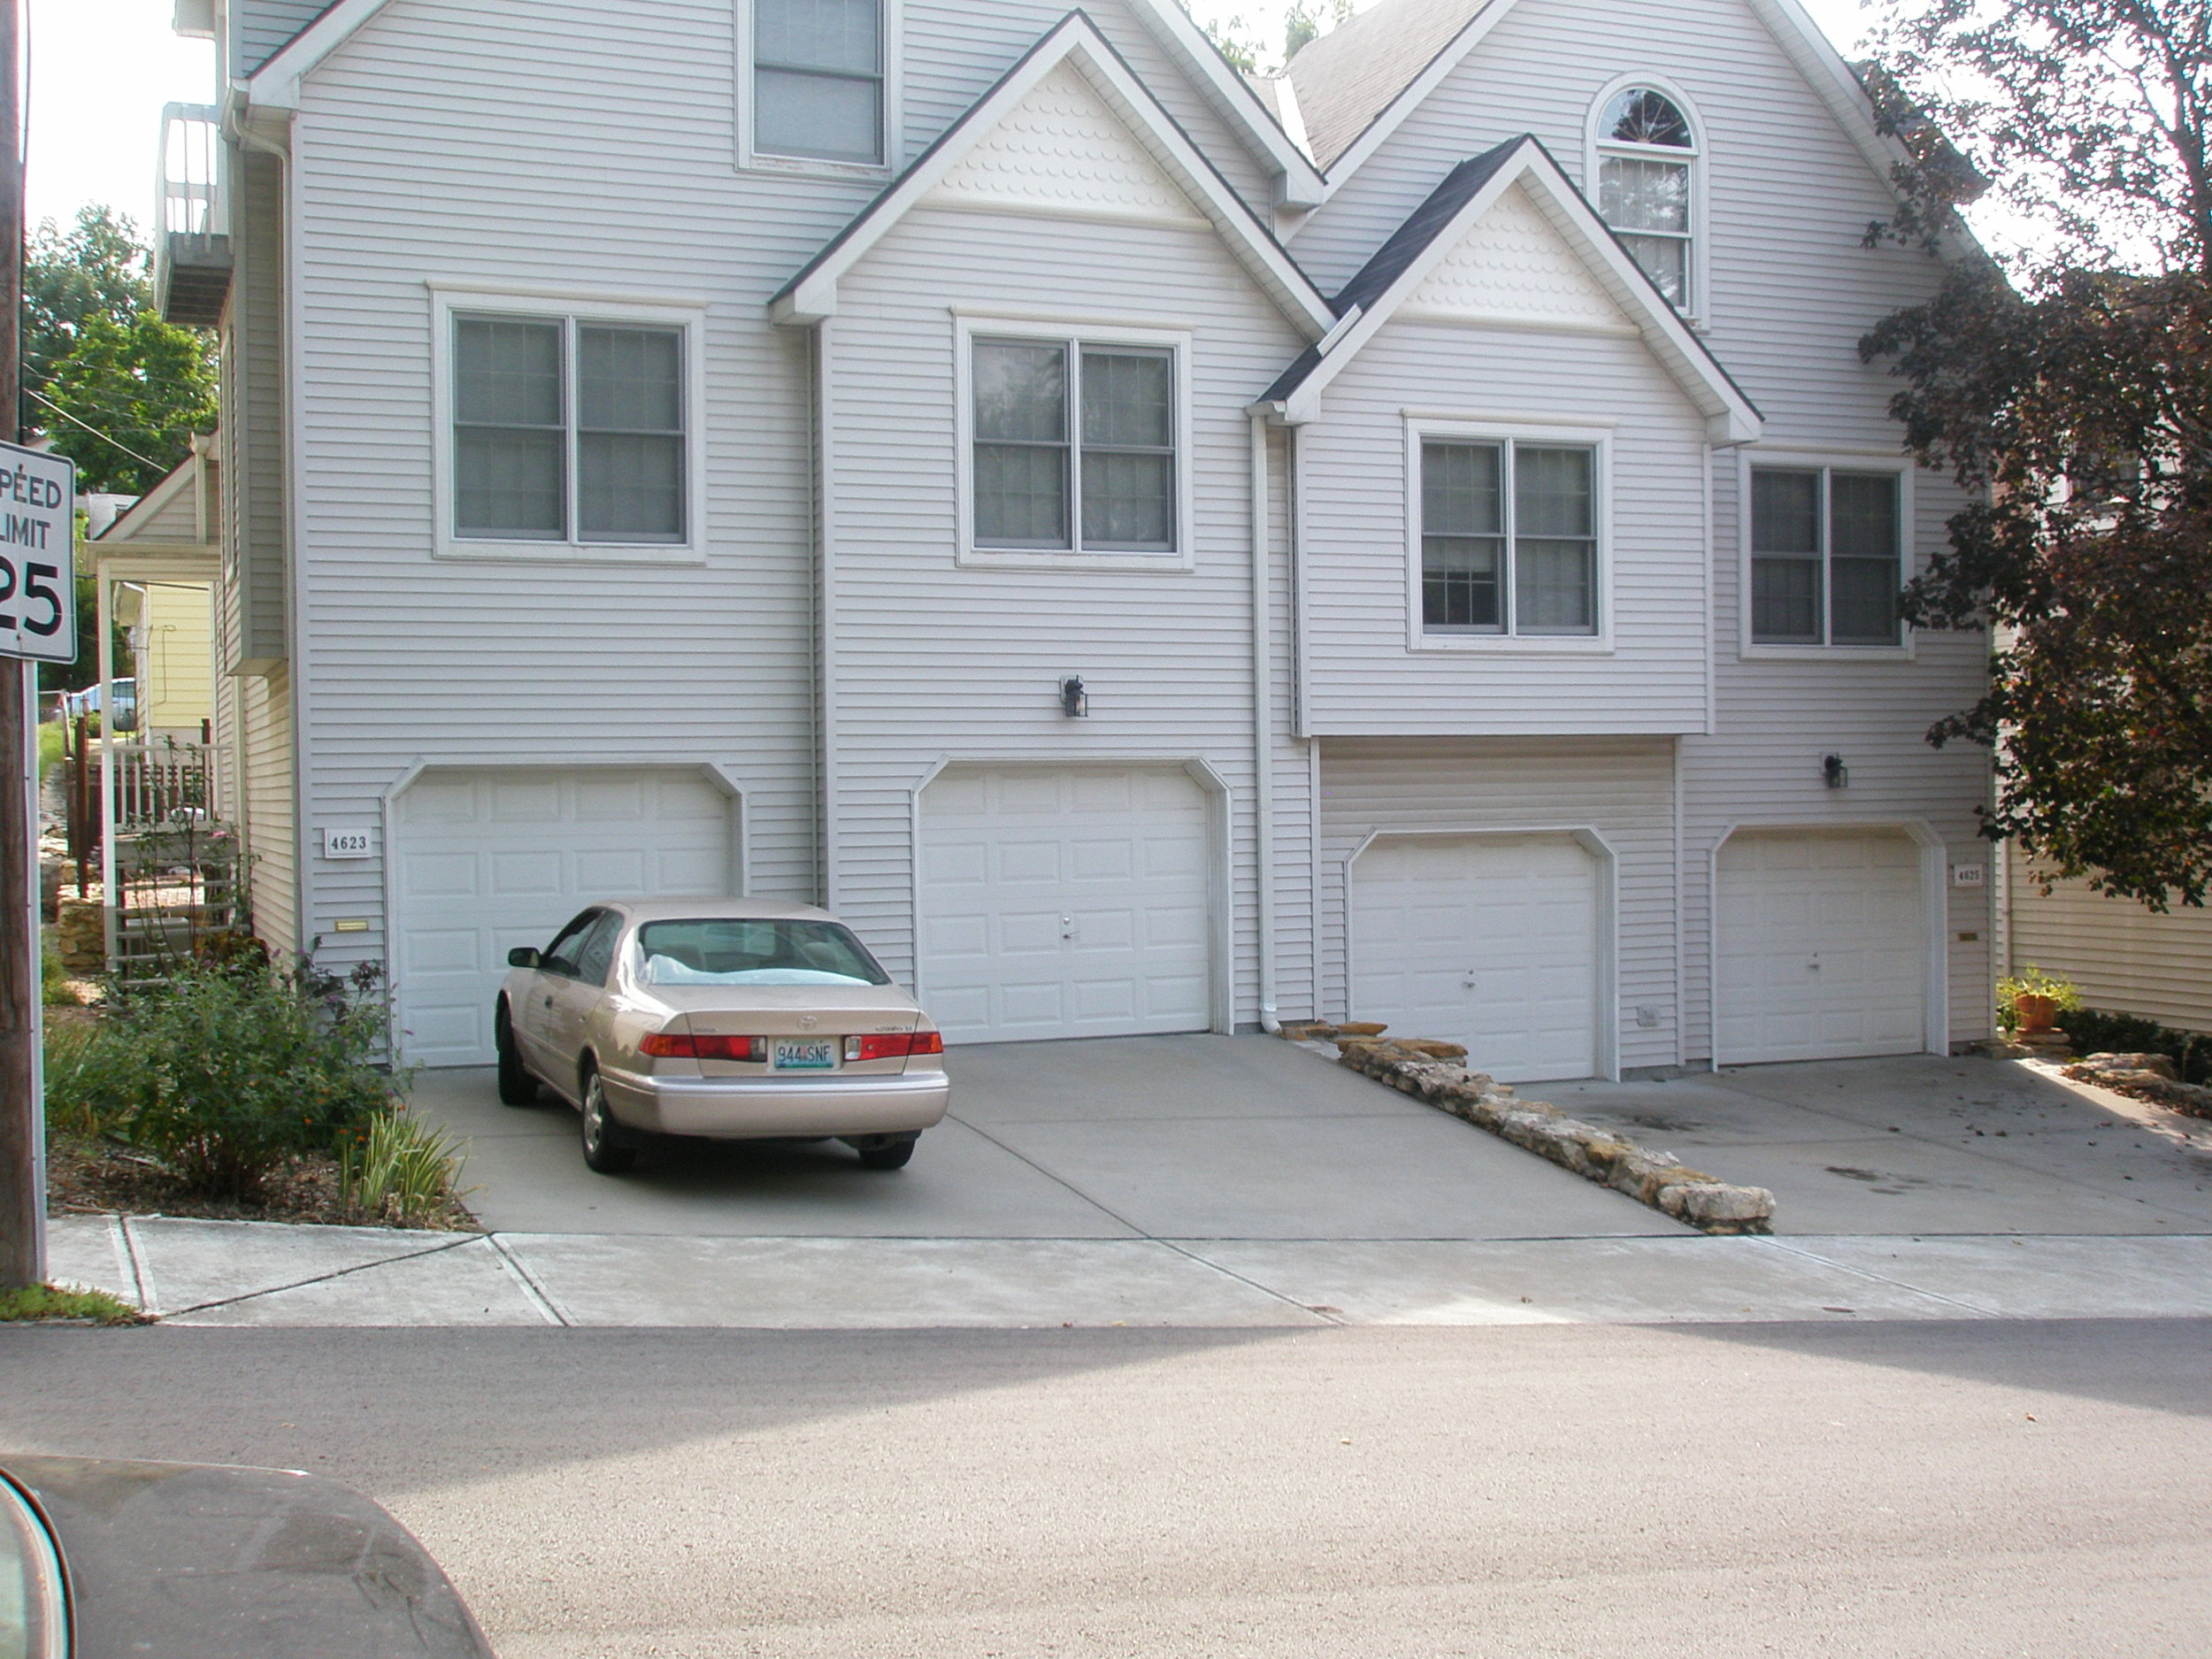 Say no this type of garage/parking placement